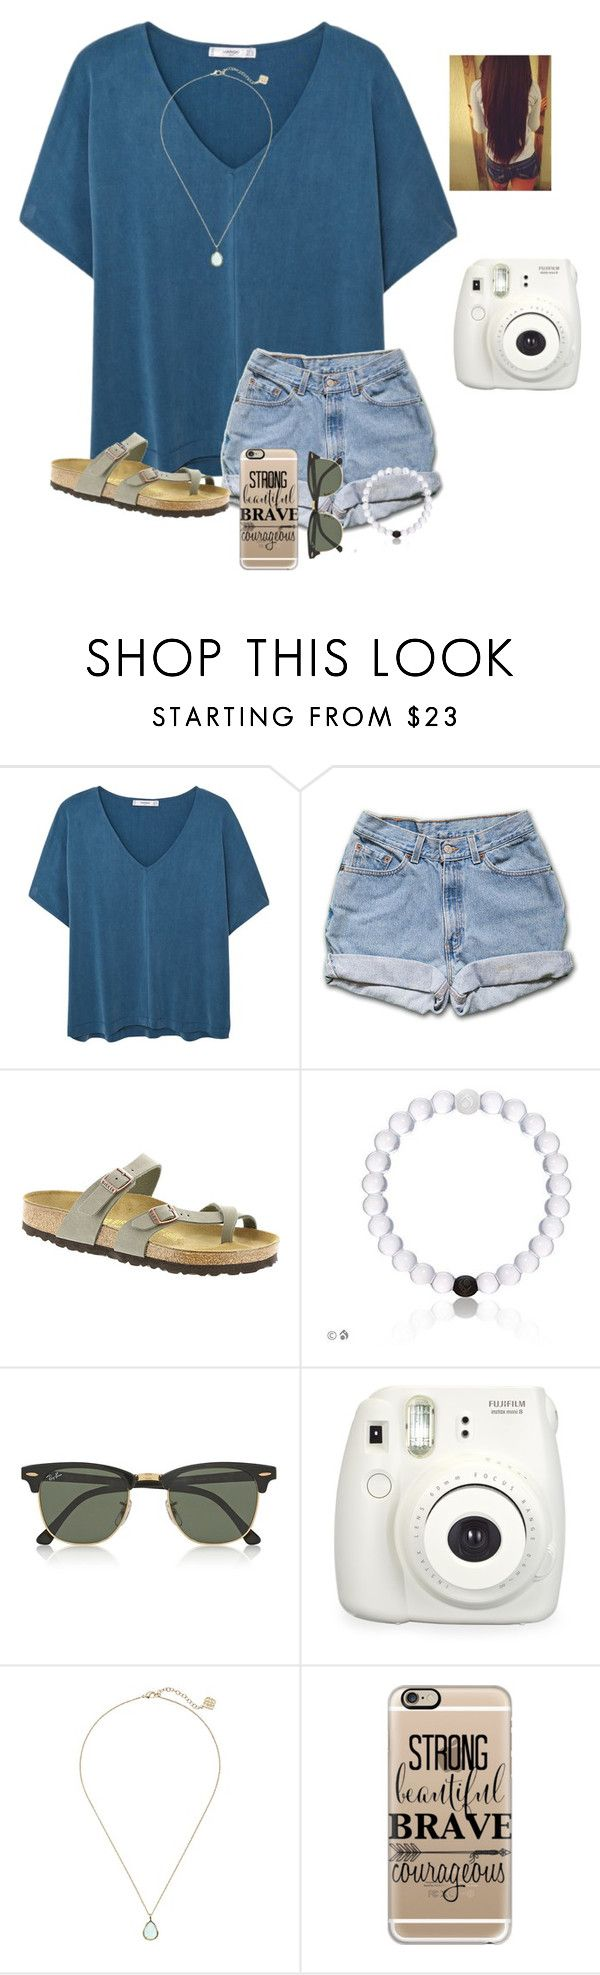 """""""Who else has listened to mercy by Shawn Mendes?"""" by raquate1232 ❤ liked on Polyvore featuring MANGO, Birkenstock, Ray-Ban, Fuji, Kendra Scott and Casetify"""